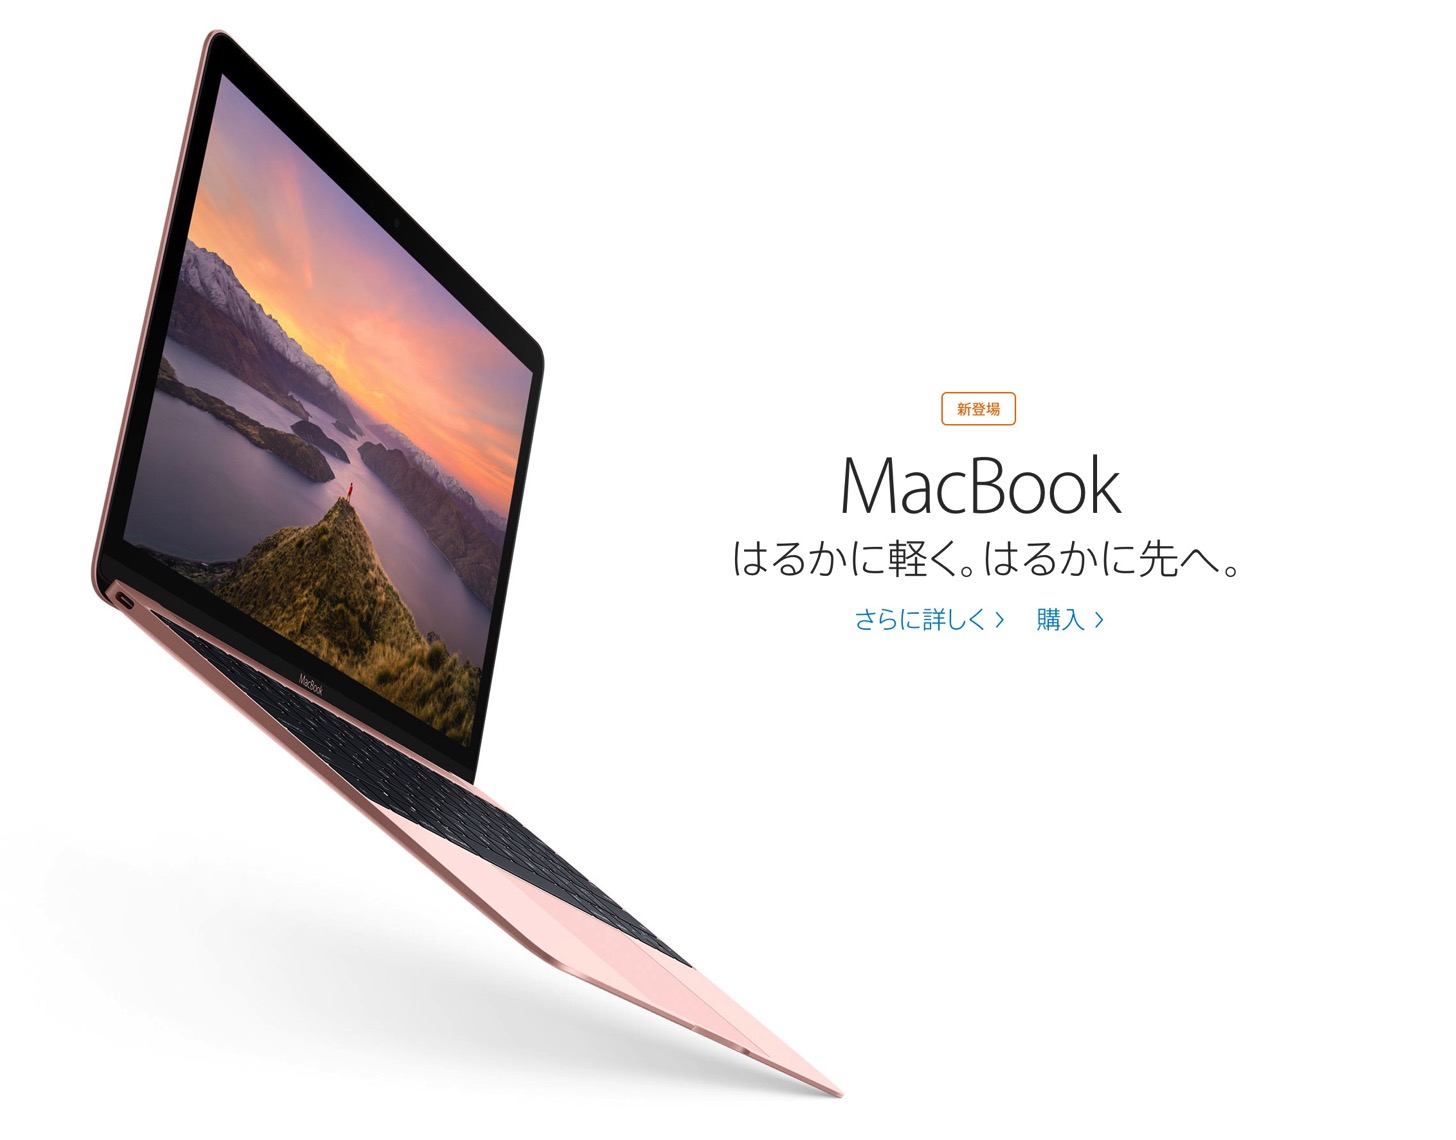 macbook 12 inch early 2016